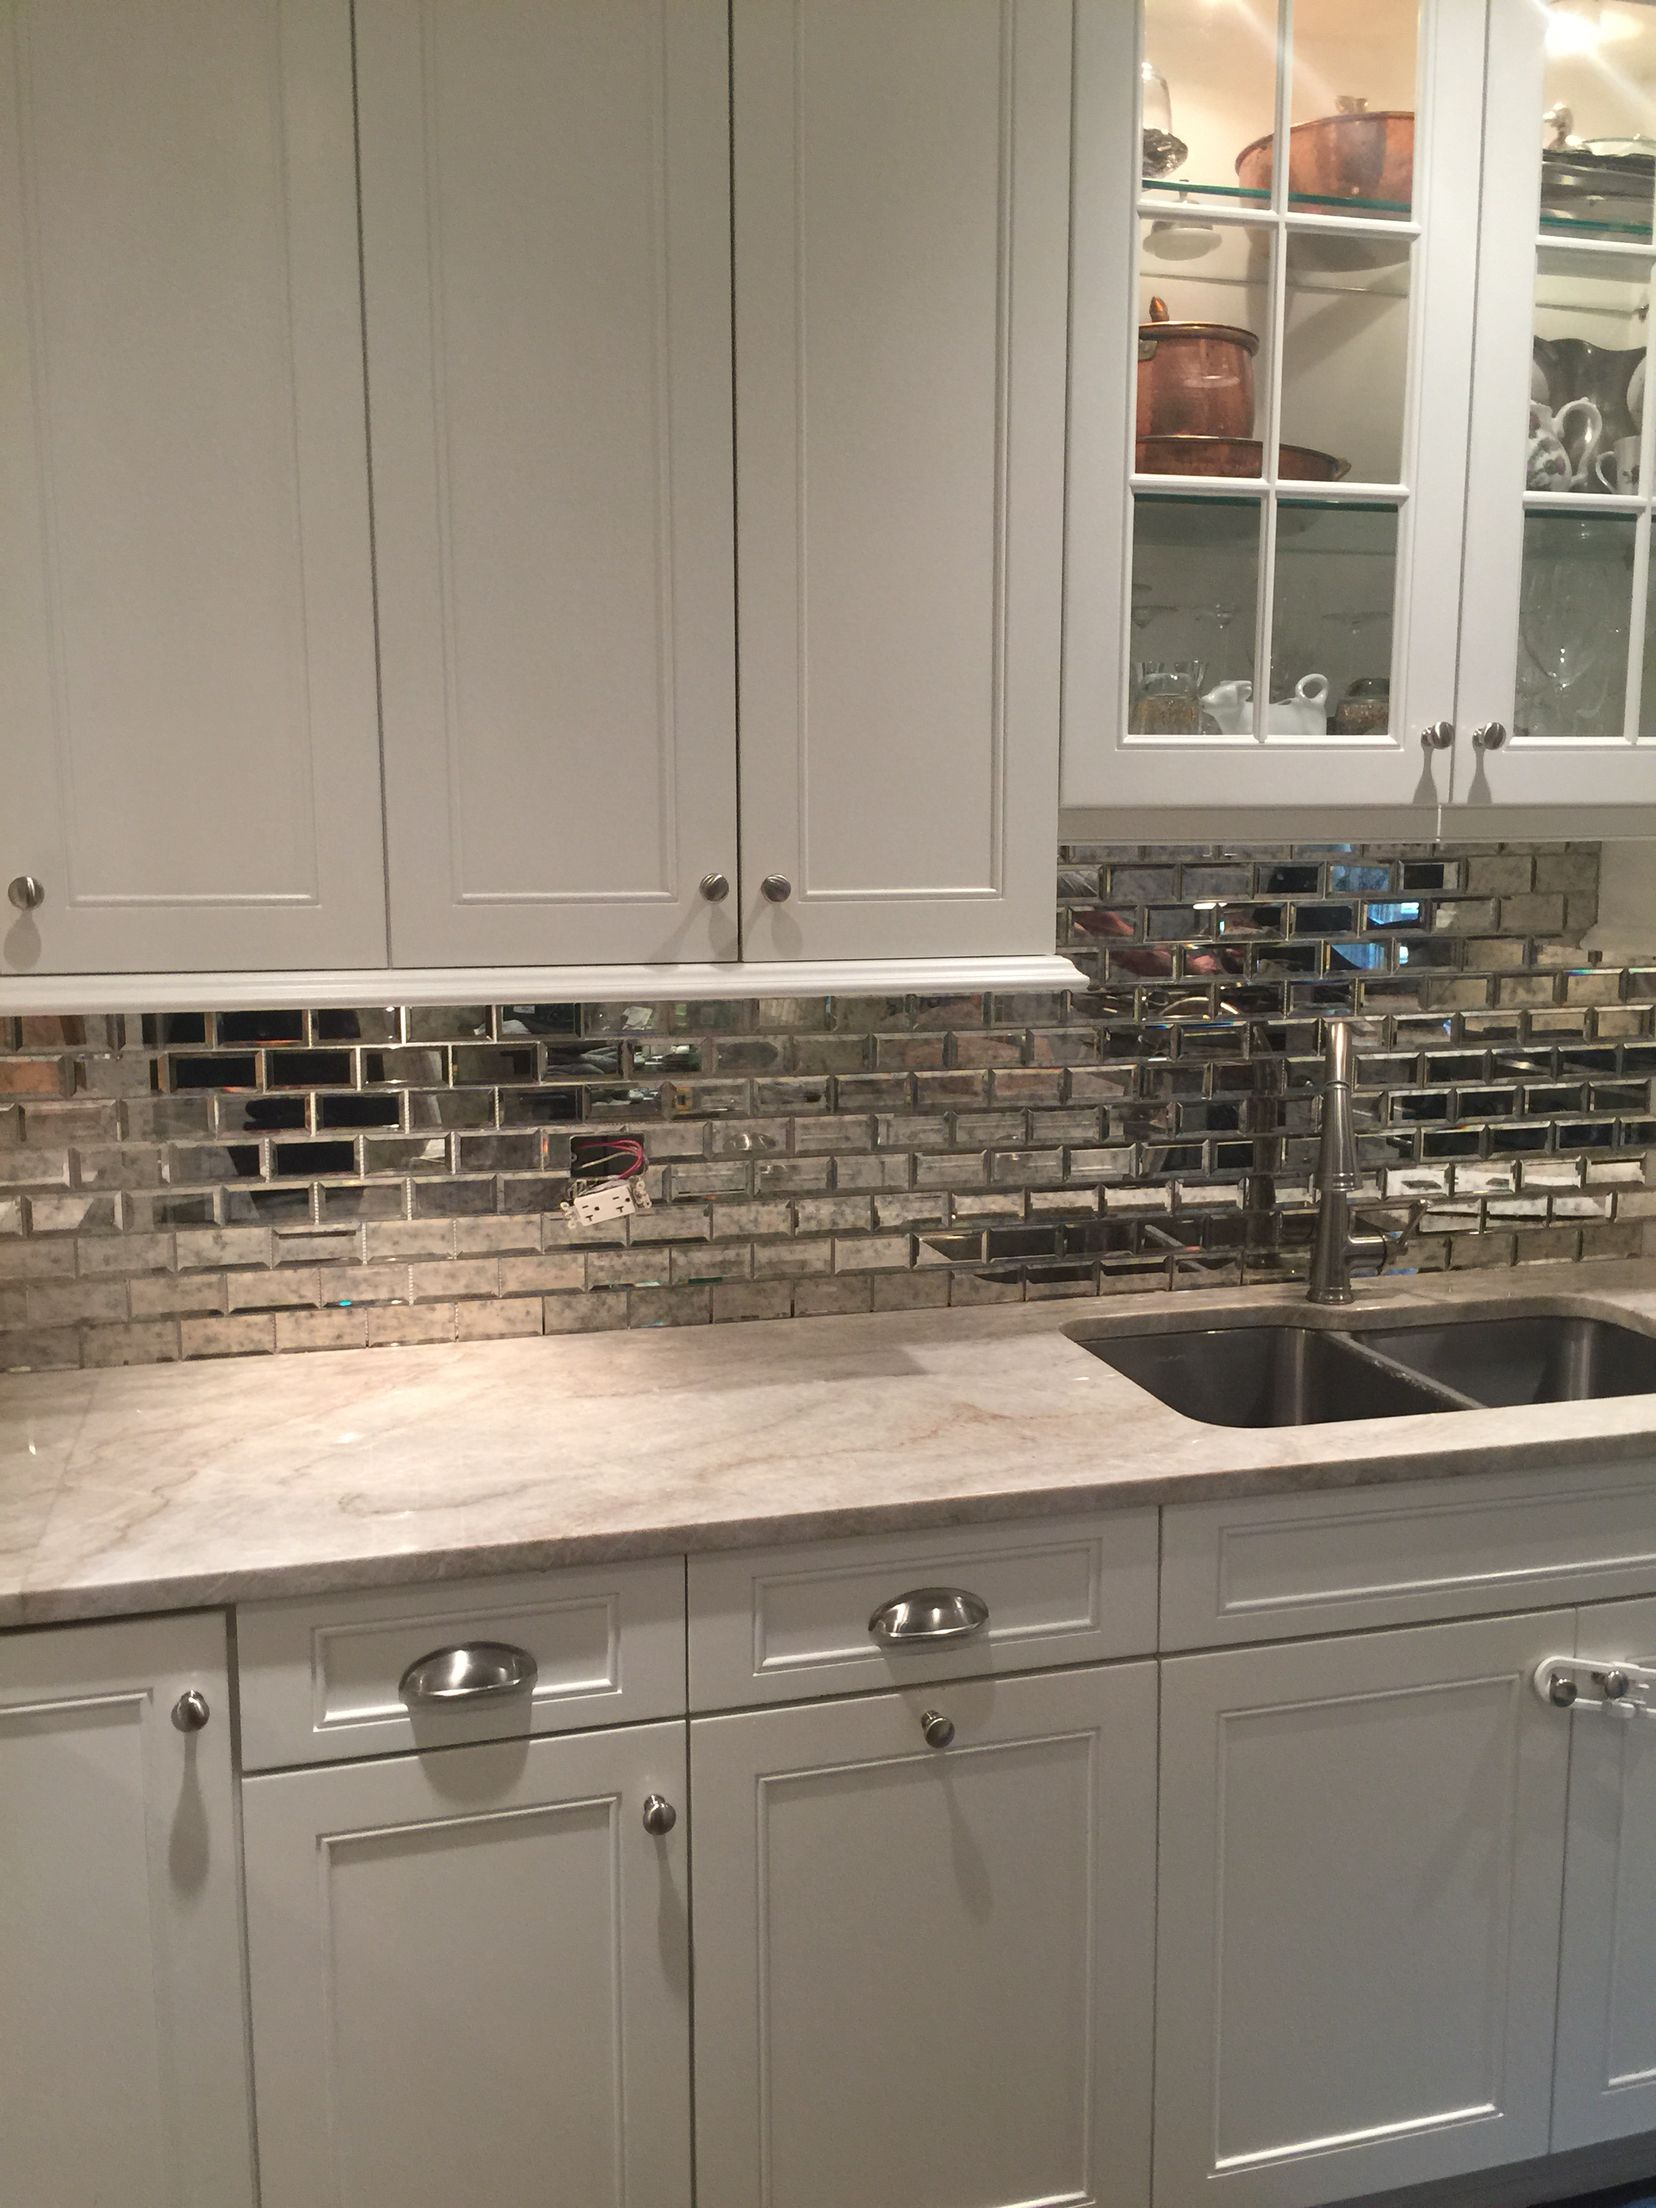 simply white kitchen cabinet taj mahal quartzite mirrored subway rh nl pinterest com Peel and Stick Backsplash Tiles Glass Mirror Backsplash